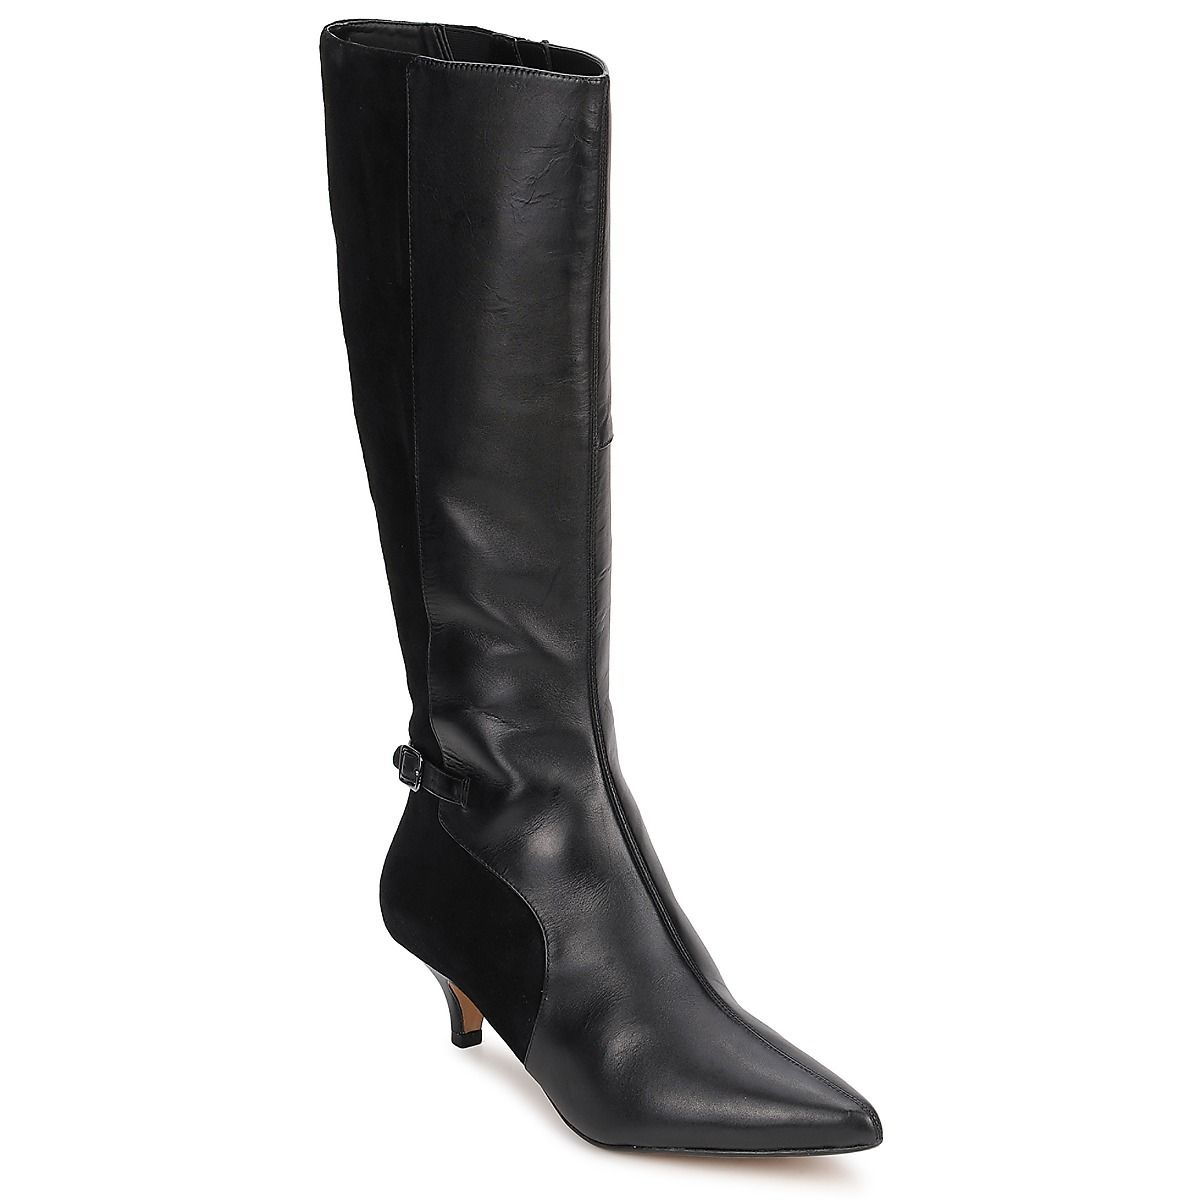 943a8f28 High boots Clarks KENZA ALASKA BLACK - Free next day delivery with  Spartoo.co.uk ! - Shoes Women £ 84.99